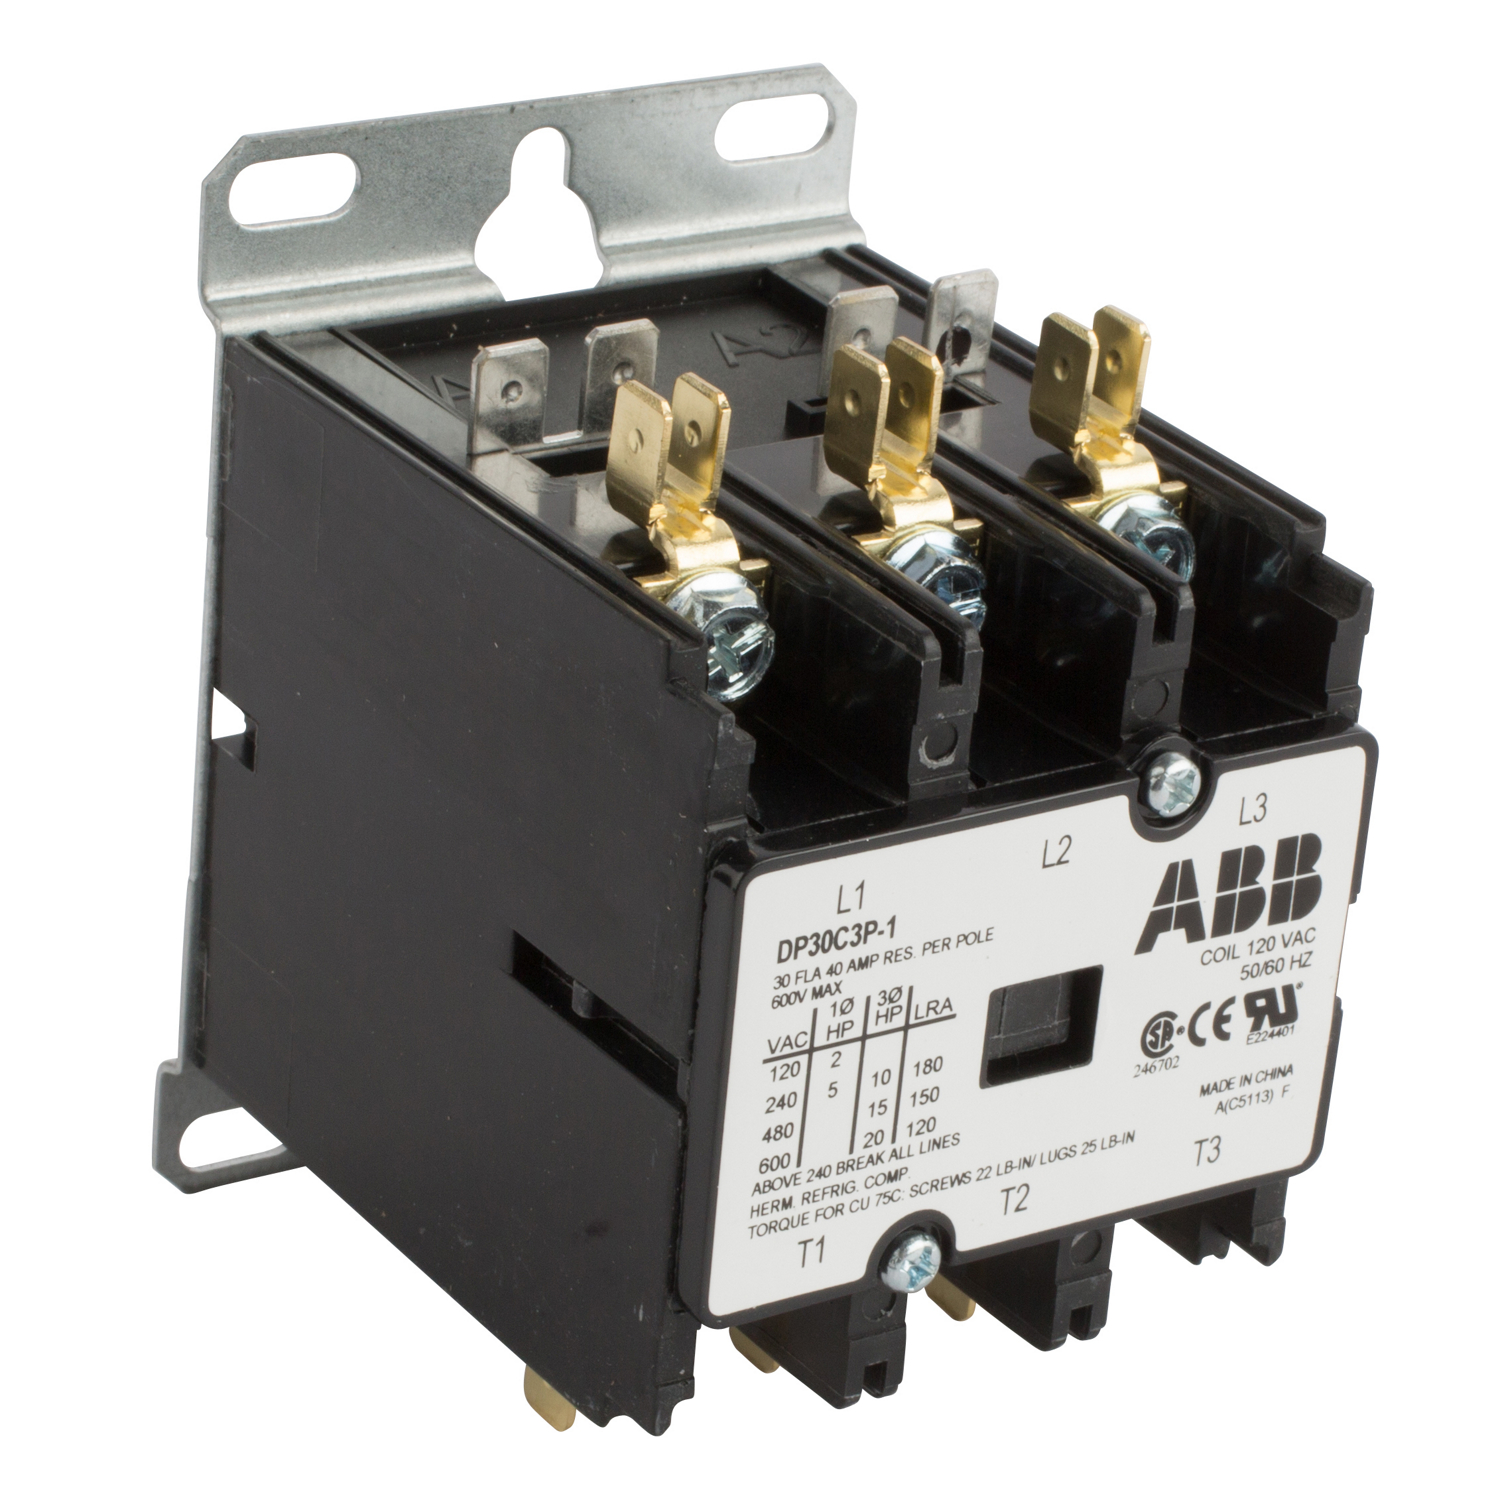 ABB DP30C3P-1 DPCONTR, 30A, 3P, 120/60 30 Amp, 3-Pole, Definite Purpose Contactor, 600V Rated, Screw Terminals, 120V AC Coil. **THESE CONTACTORS ARE NOT RECOMMENDED FOR USE ON LIGHTING CIRCUITS, IF THEY ARE USED ON LIGHTING CIRCUITS, THEY WILL NOT BE COVERED UNDER WARRANTY**